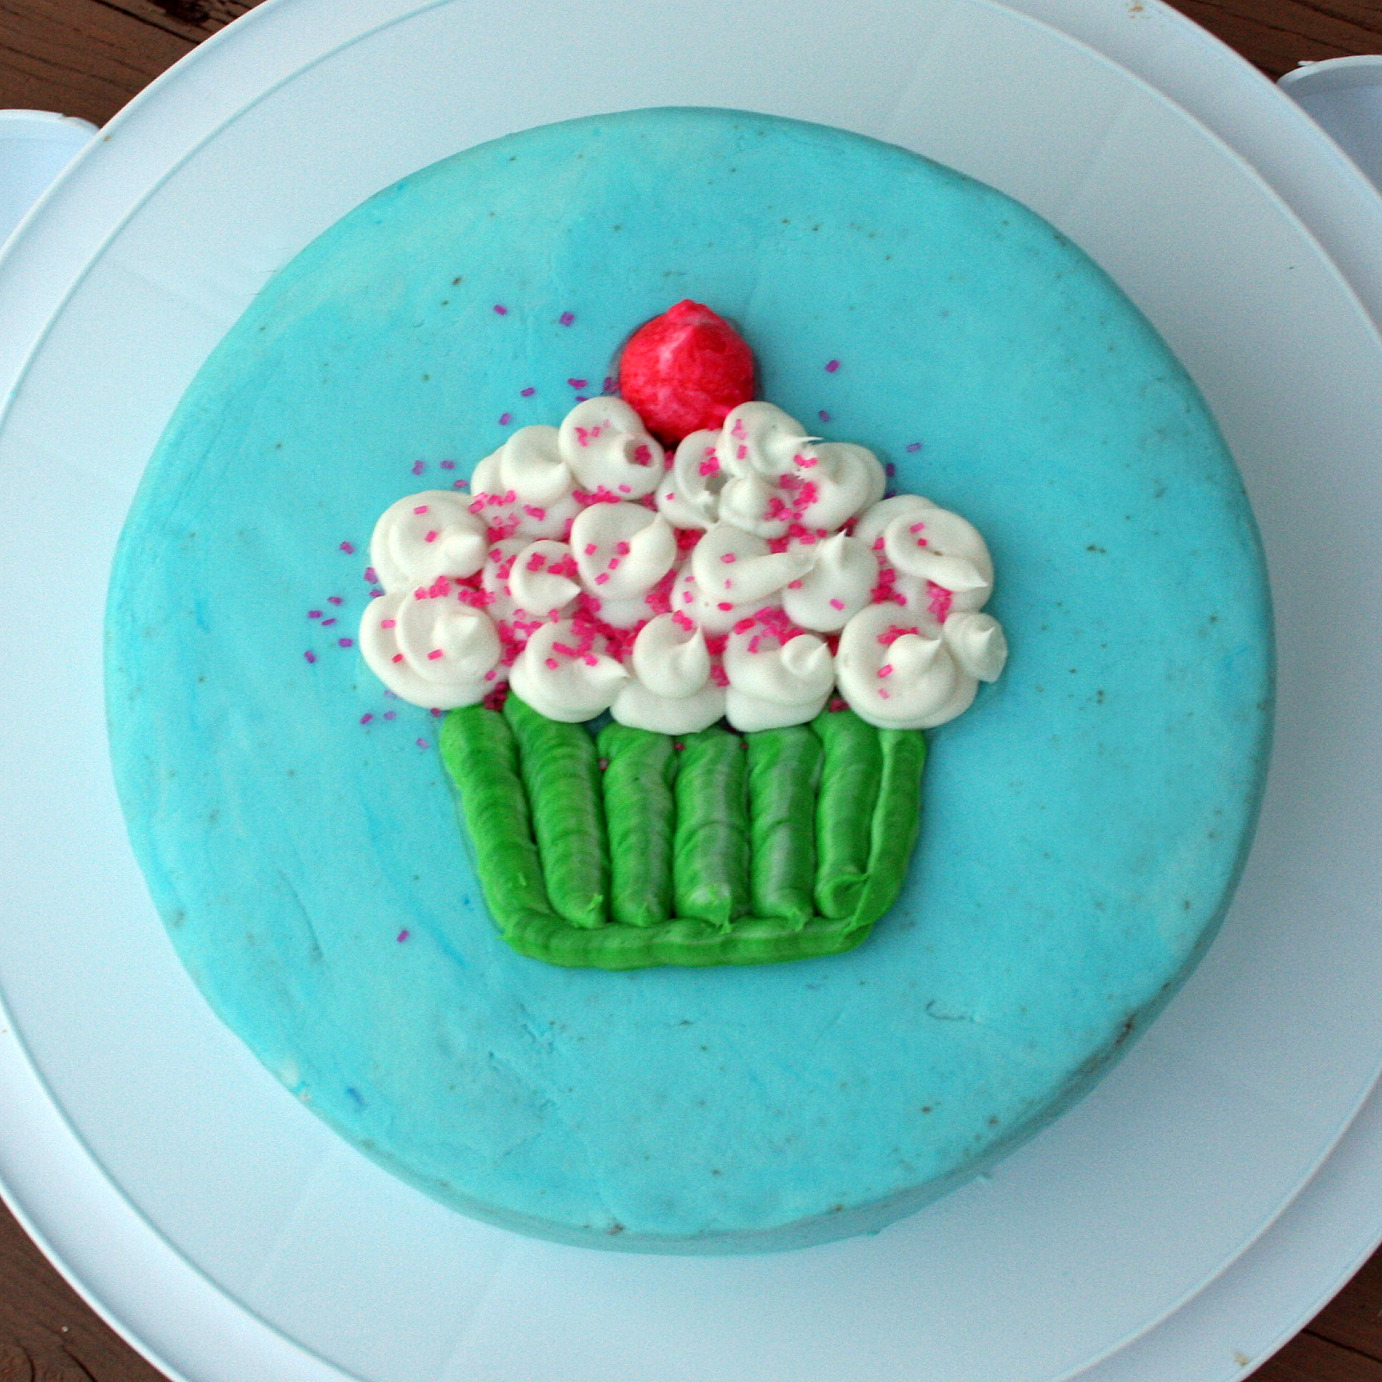 Cake Making Classes Frankston : Wilton Cake Decorating Classes at Michaels - Busy Mommy